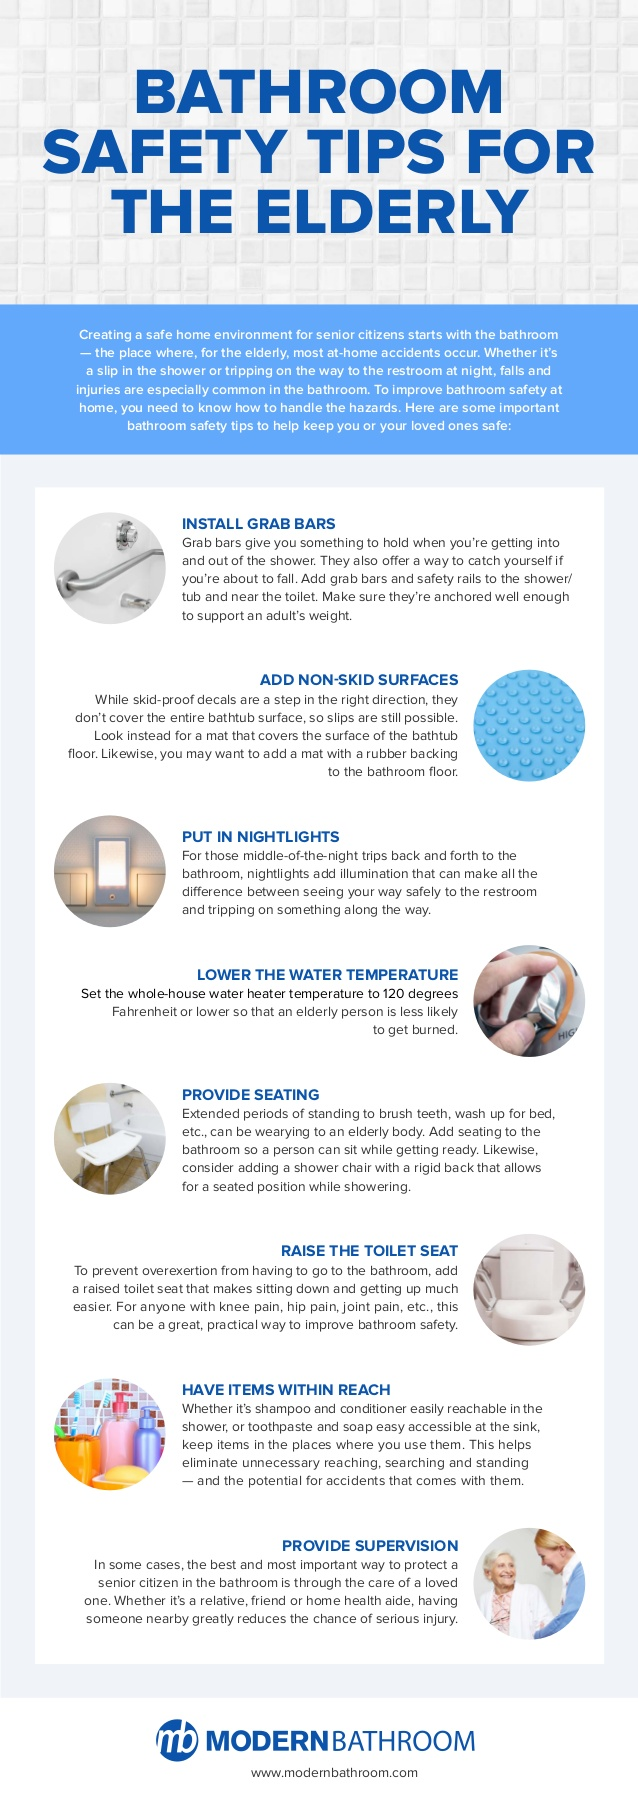 Bathroom Safety Tips for the Elderly Infographic